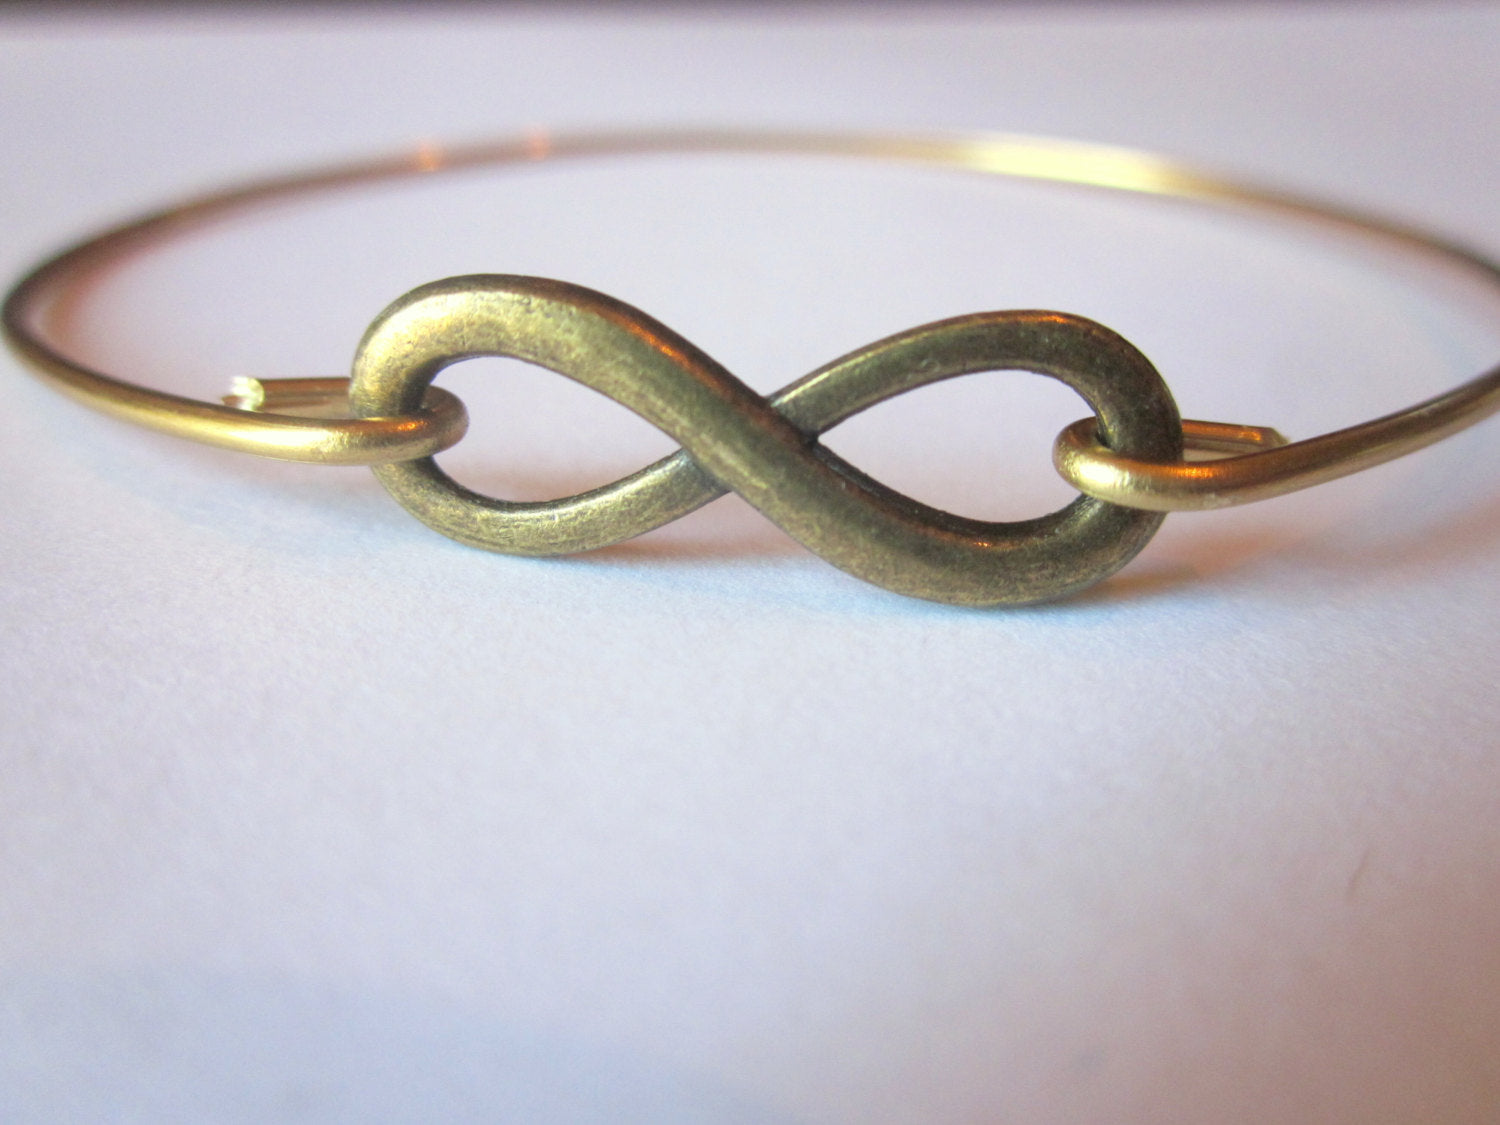 Gold Infinity Bangle Bracelet Gold Infinite Yours Stackable Bangle Charm Bracelet Valentine's Day Gift - Bridesmaid Gift - Gift under 15